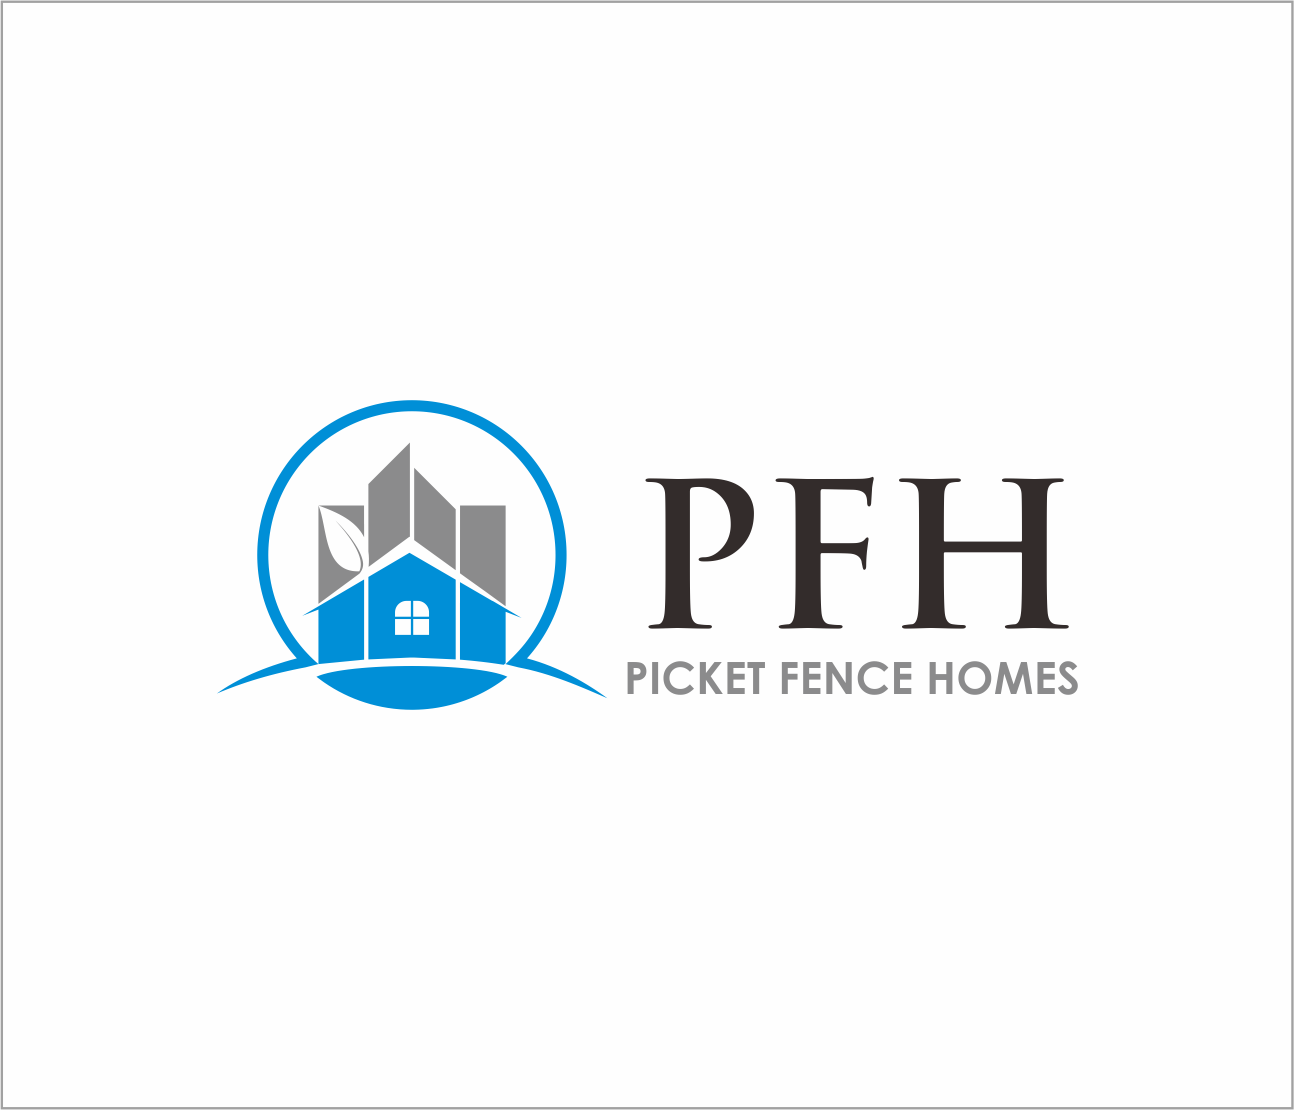 Logo Design by Armada Jamaluddin - Entry No. 19 in the Logo Design Contest Picket Fence Homes Logo Design.